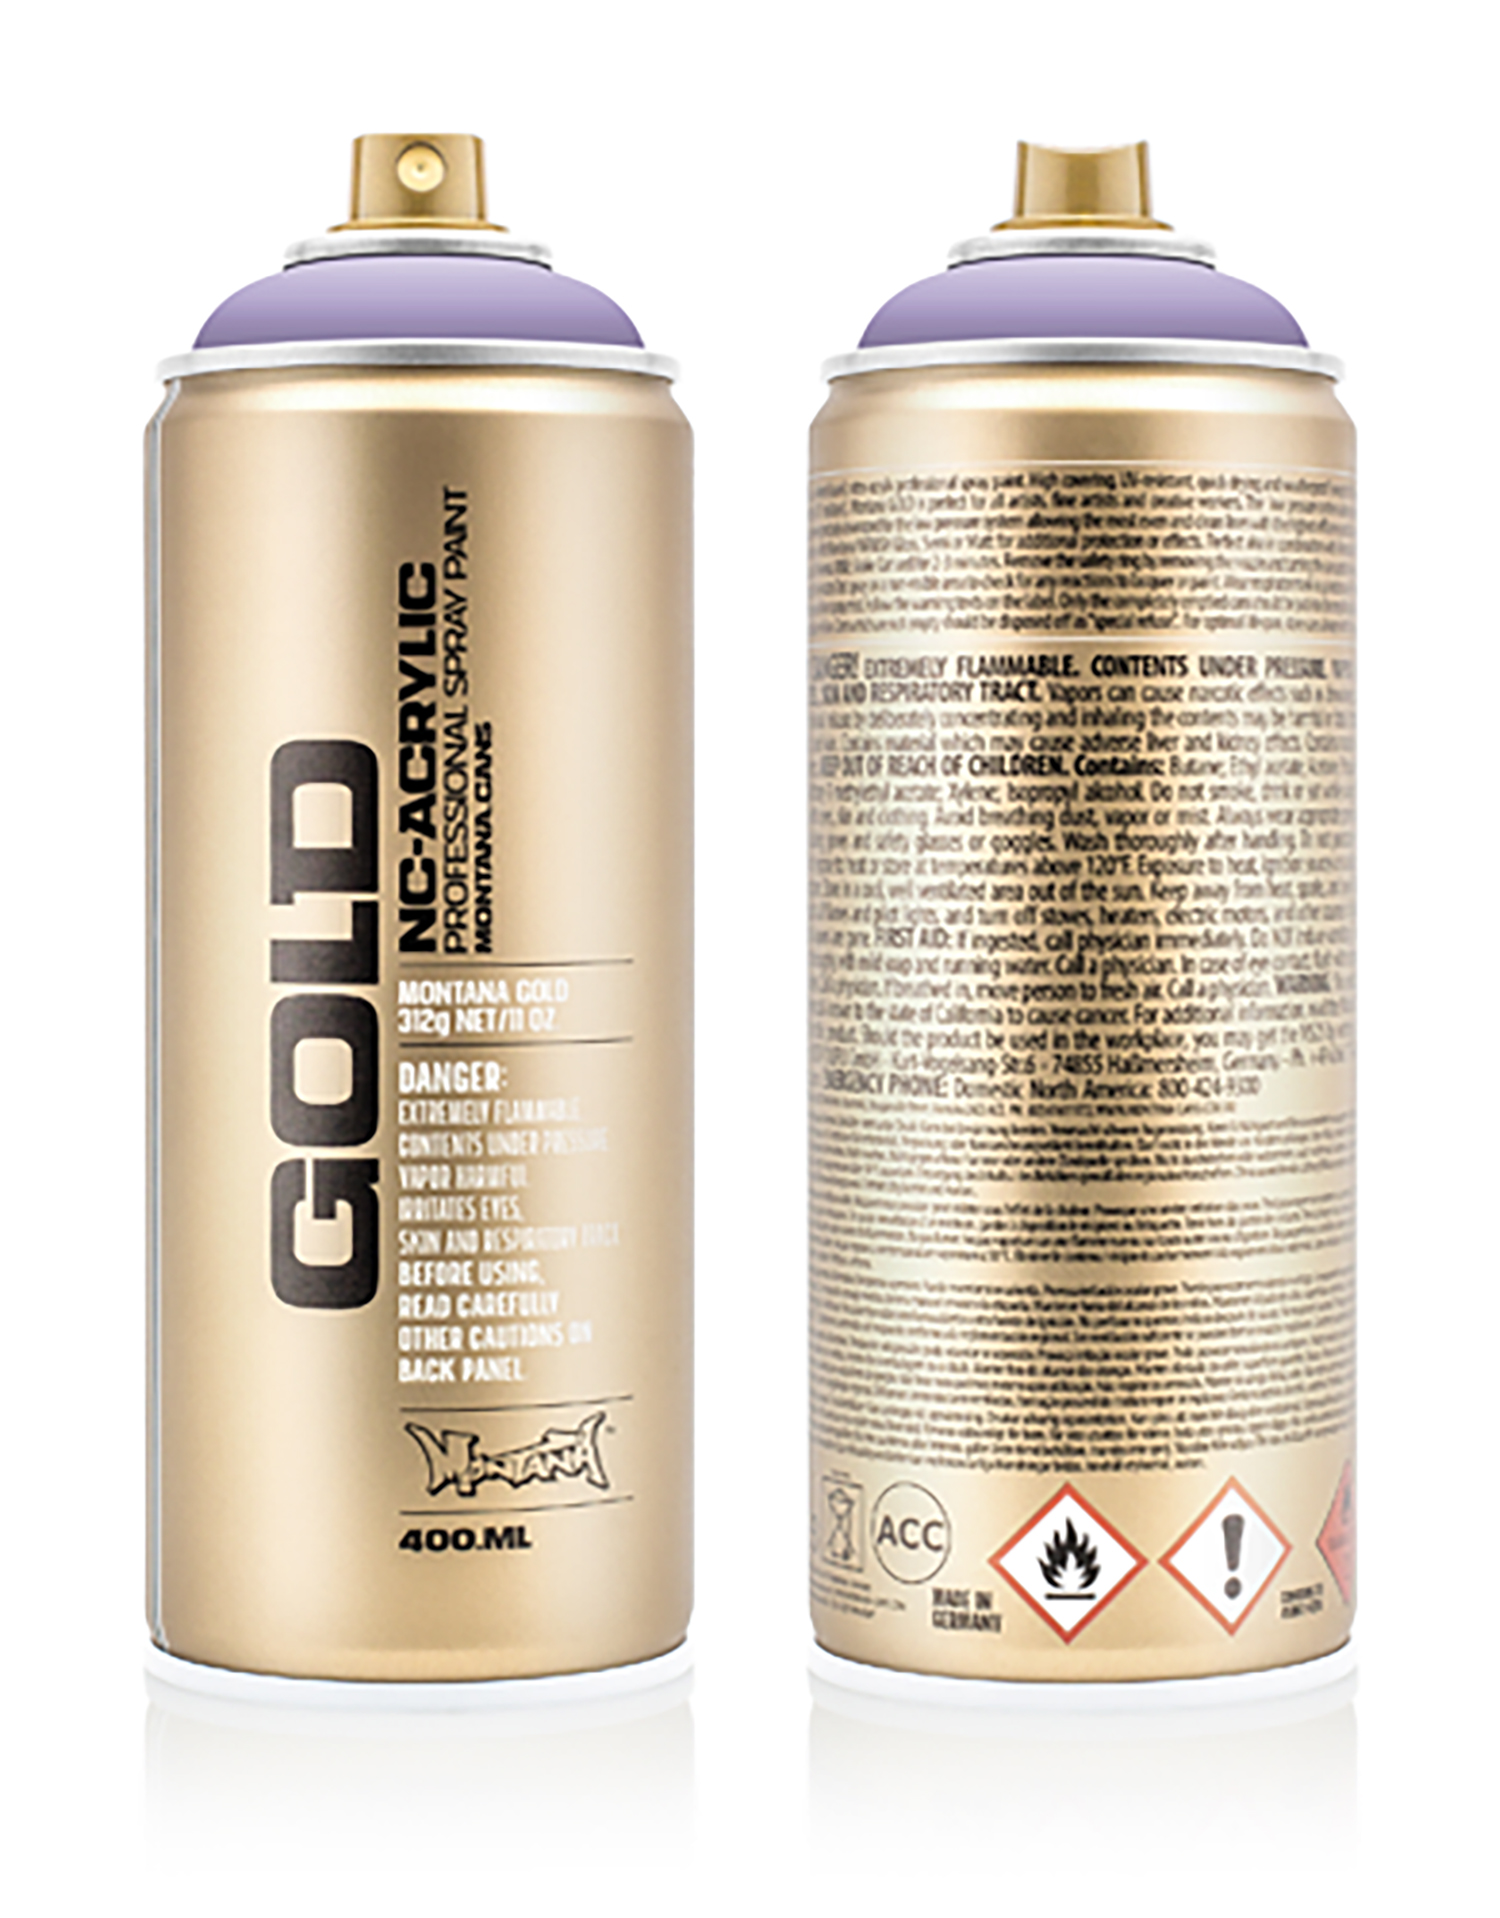 MONTANA-GOLD-SPRAY-400ML-G-4110